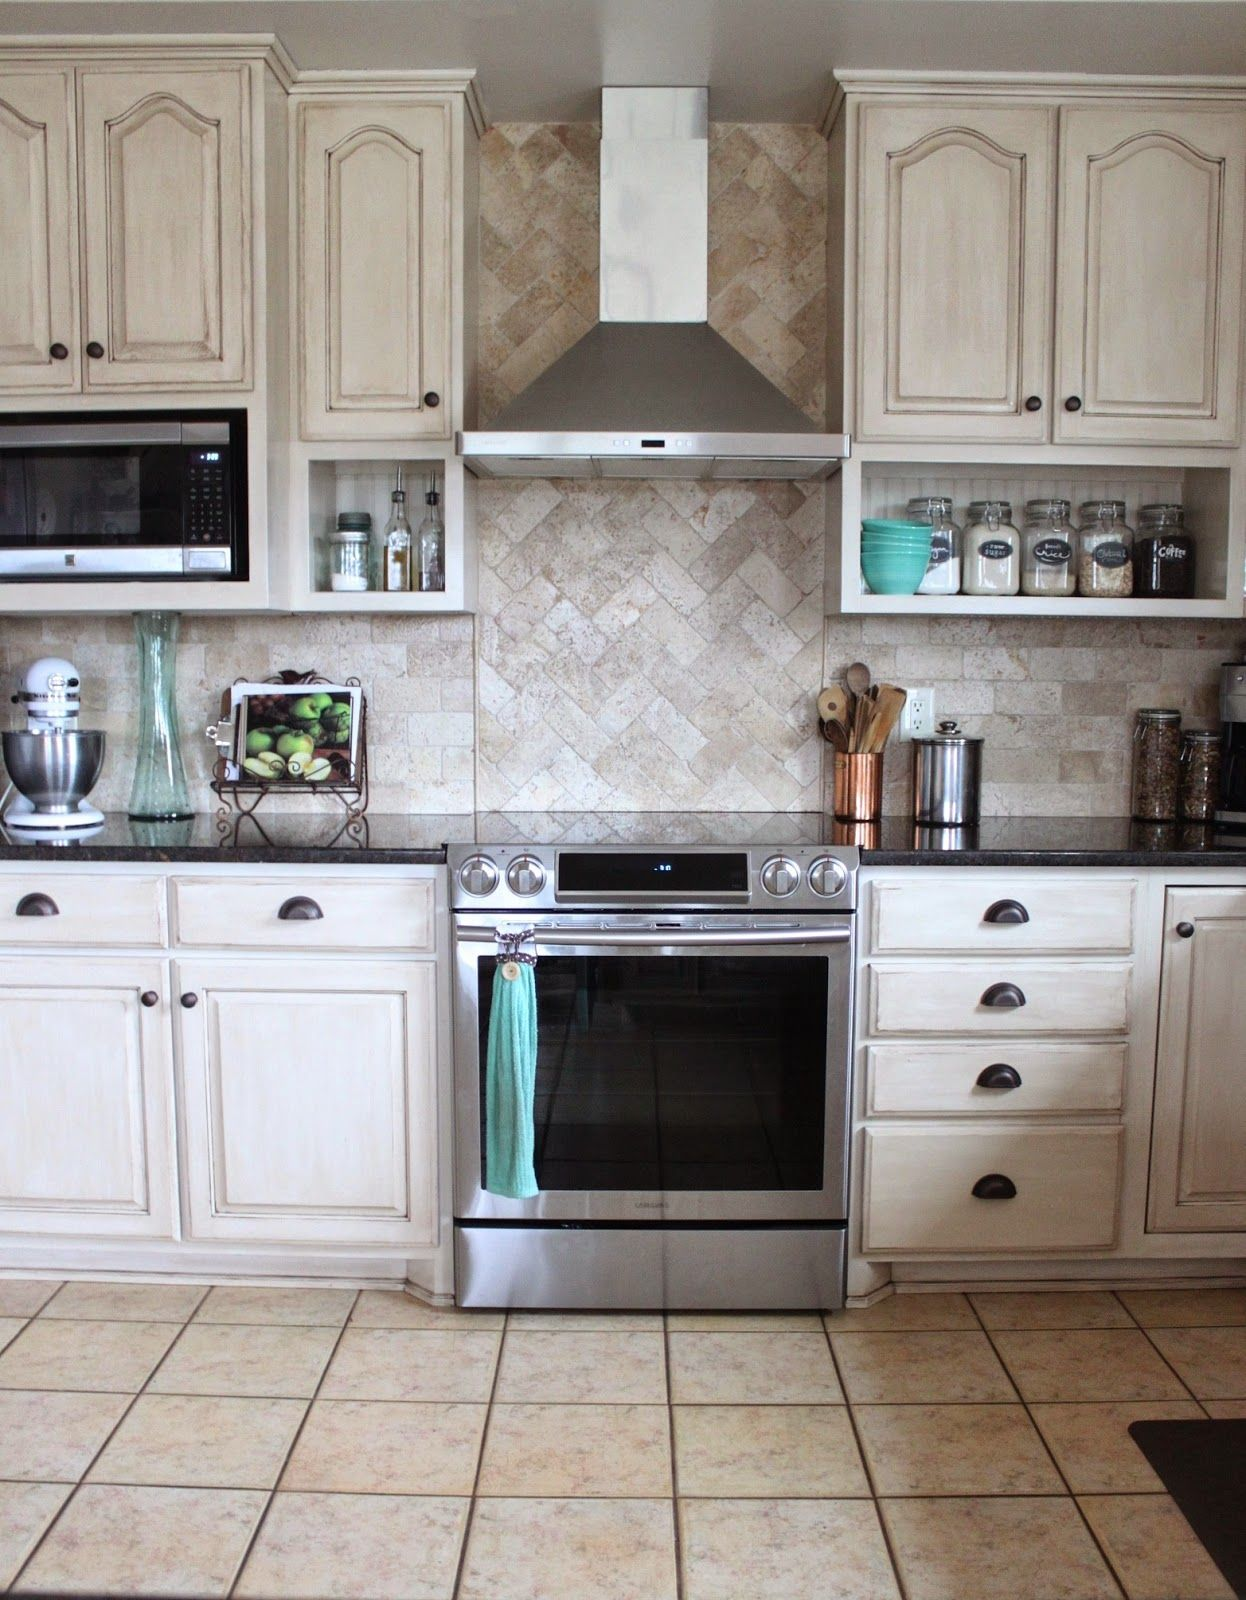 Painted Kitchen And Remodel Reveal Kitchen Cabinets To Ceiling Kitchen Design Decor New Kitchen Cabinets